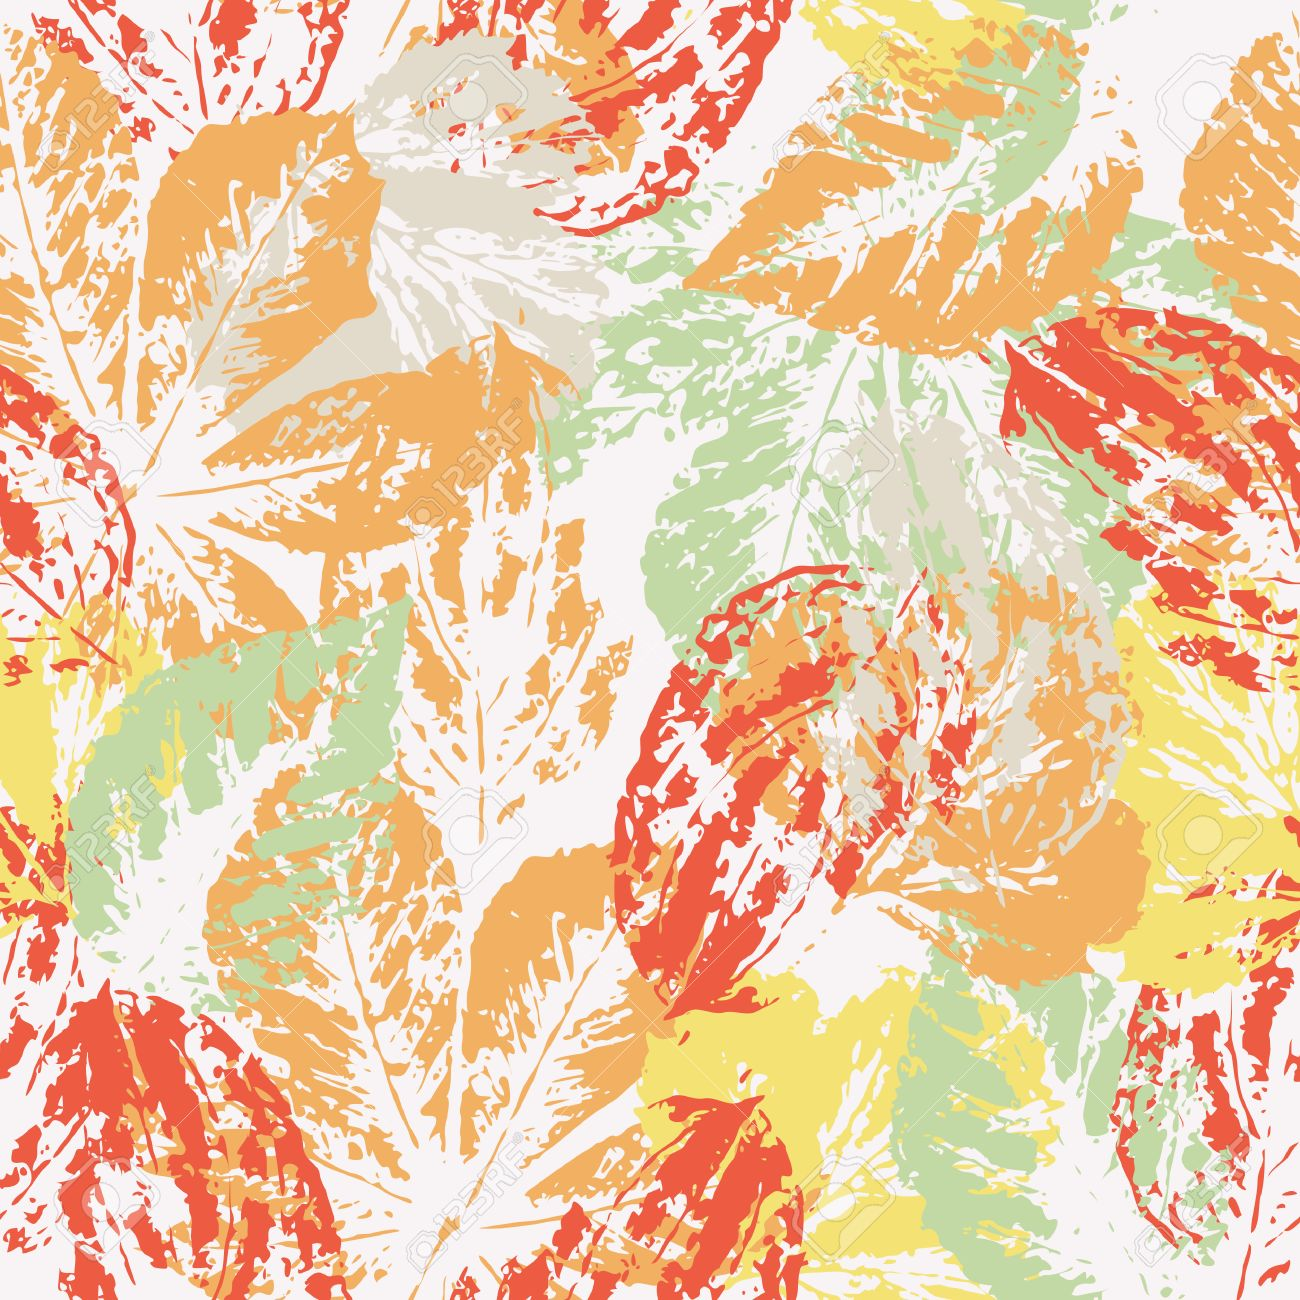 watercolor prints of colored autumn leaves with dererve and shrubs